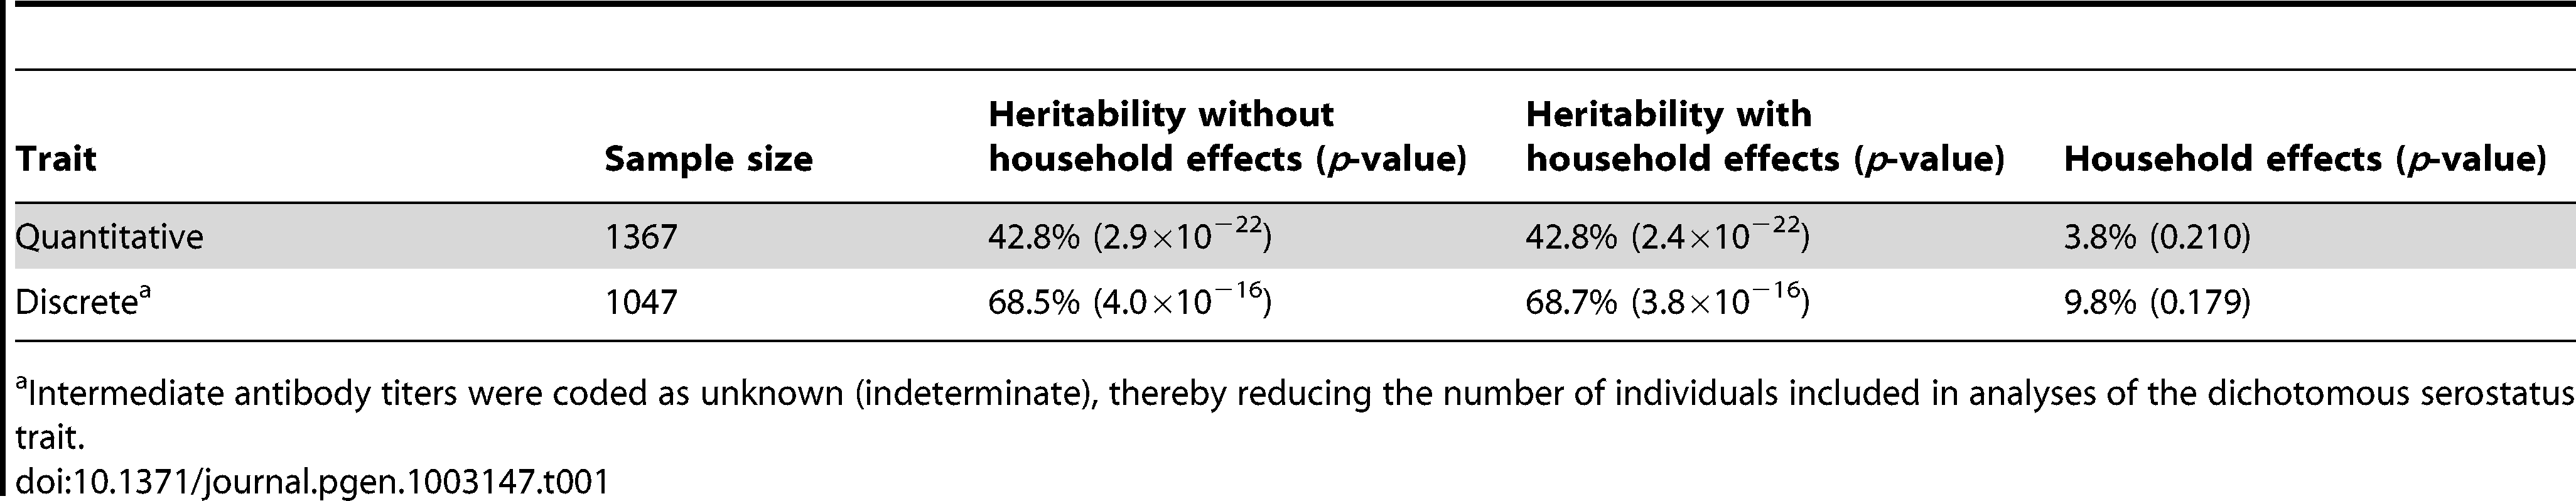 Heritability estimates of EBNA-1 quantitative antibody and discrete serostatus traits, with and without household effects.